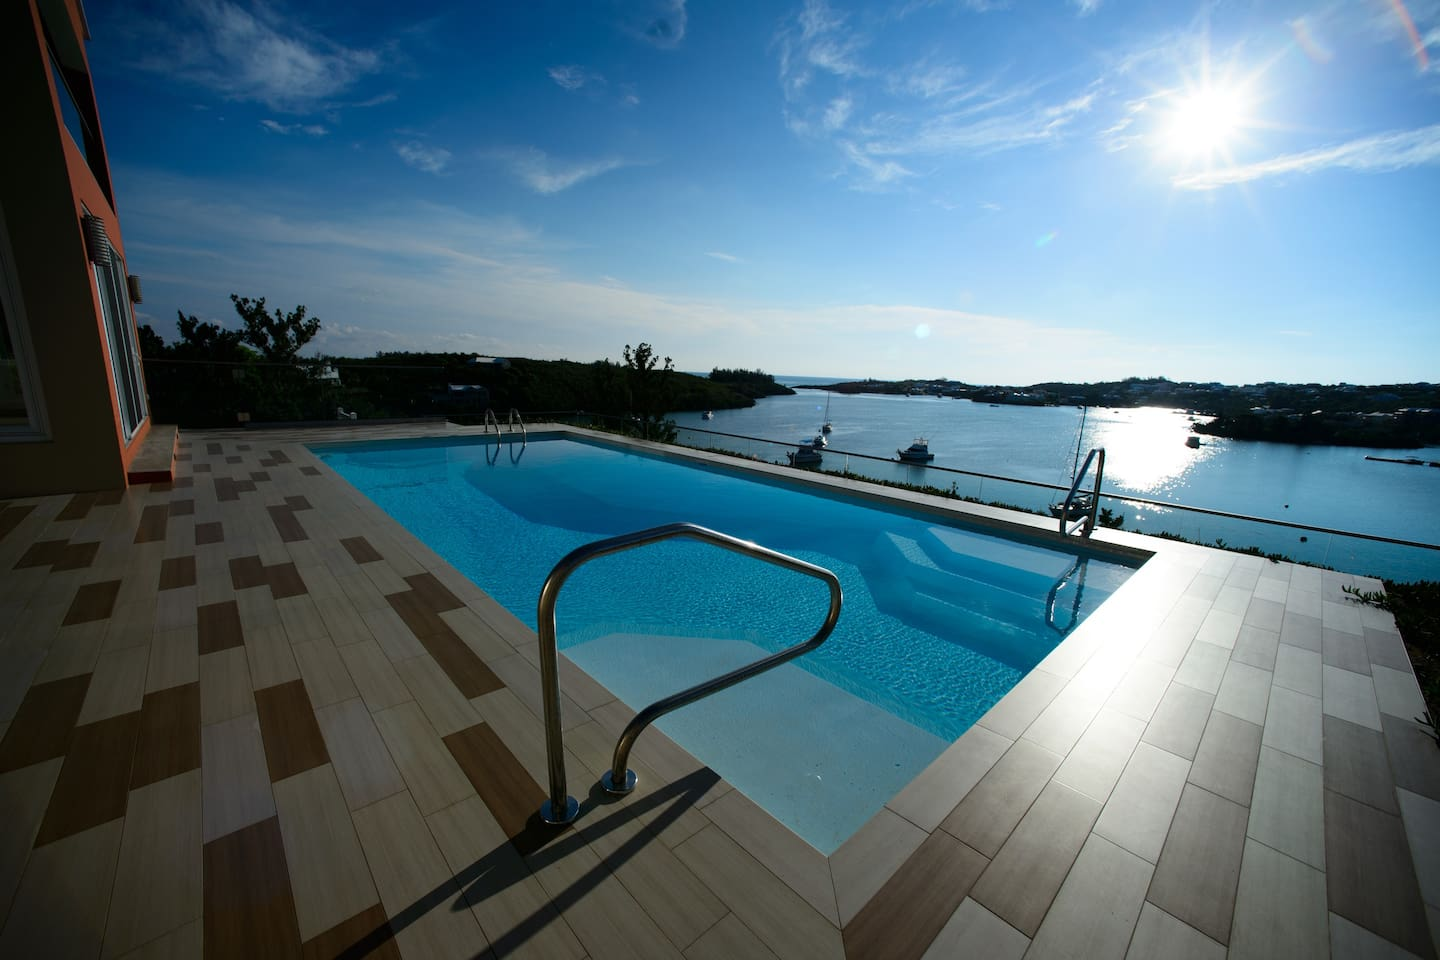 The pool deck beckons you! Relax in or outside the pool, making this a perfect start to your Bermuda vacation.